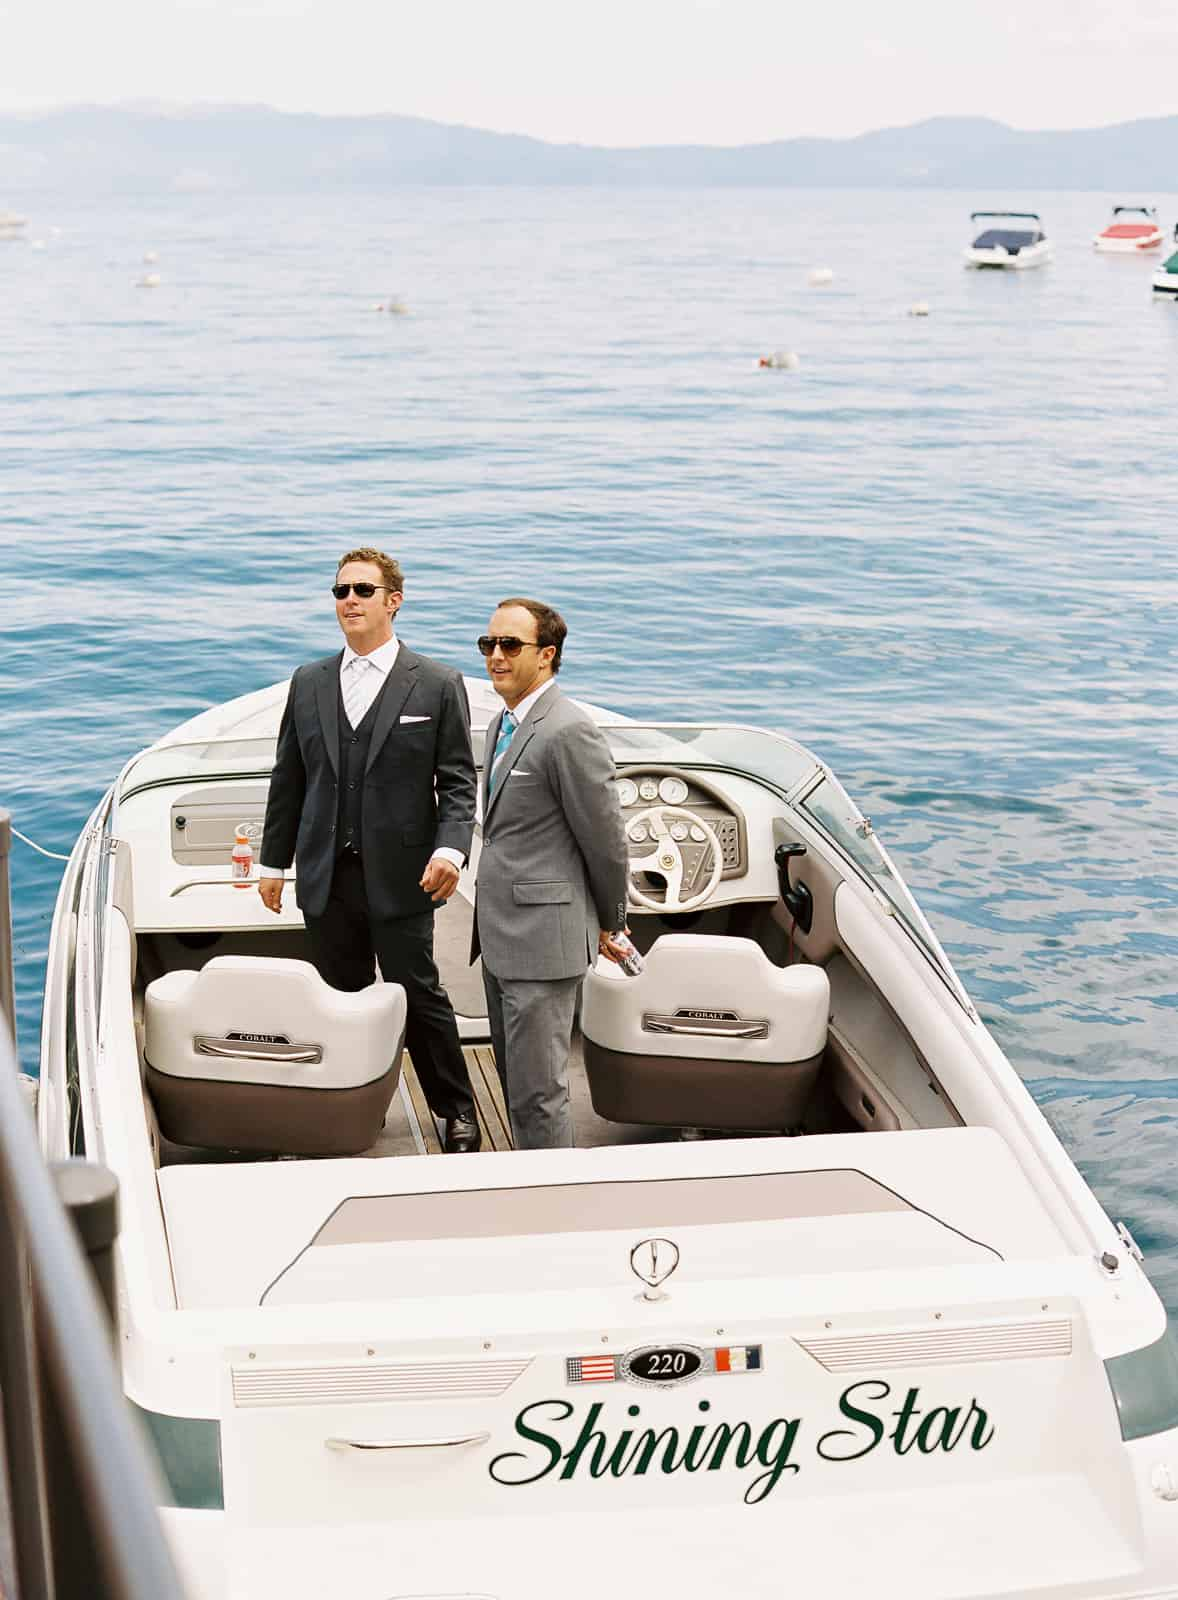 Speed boat to ceremony